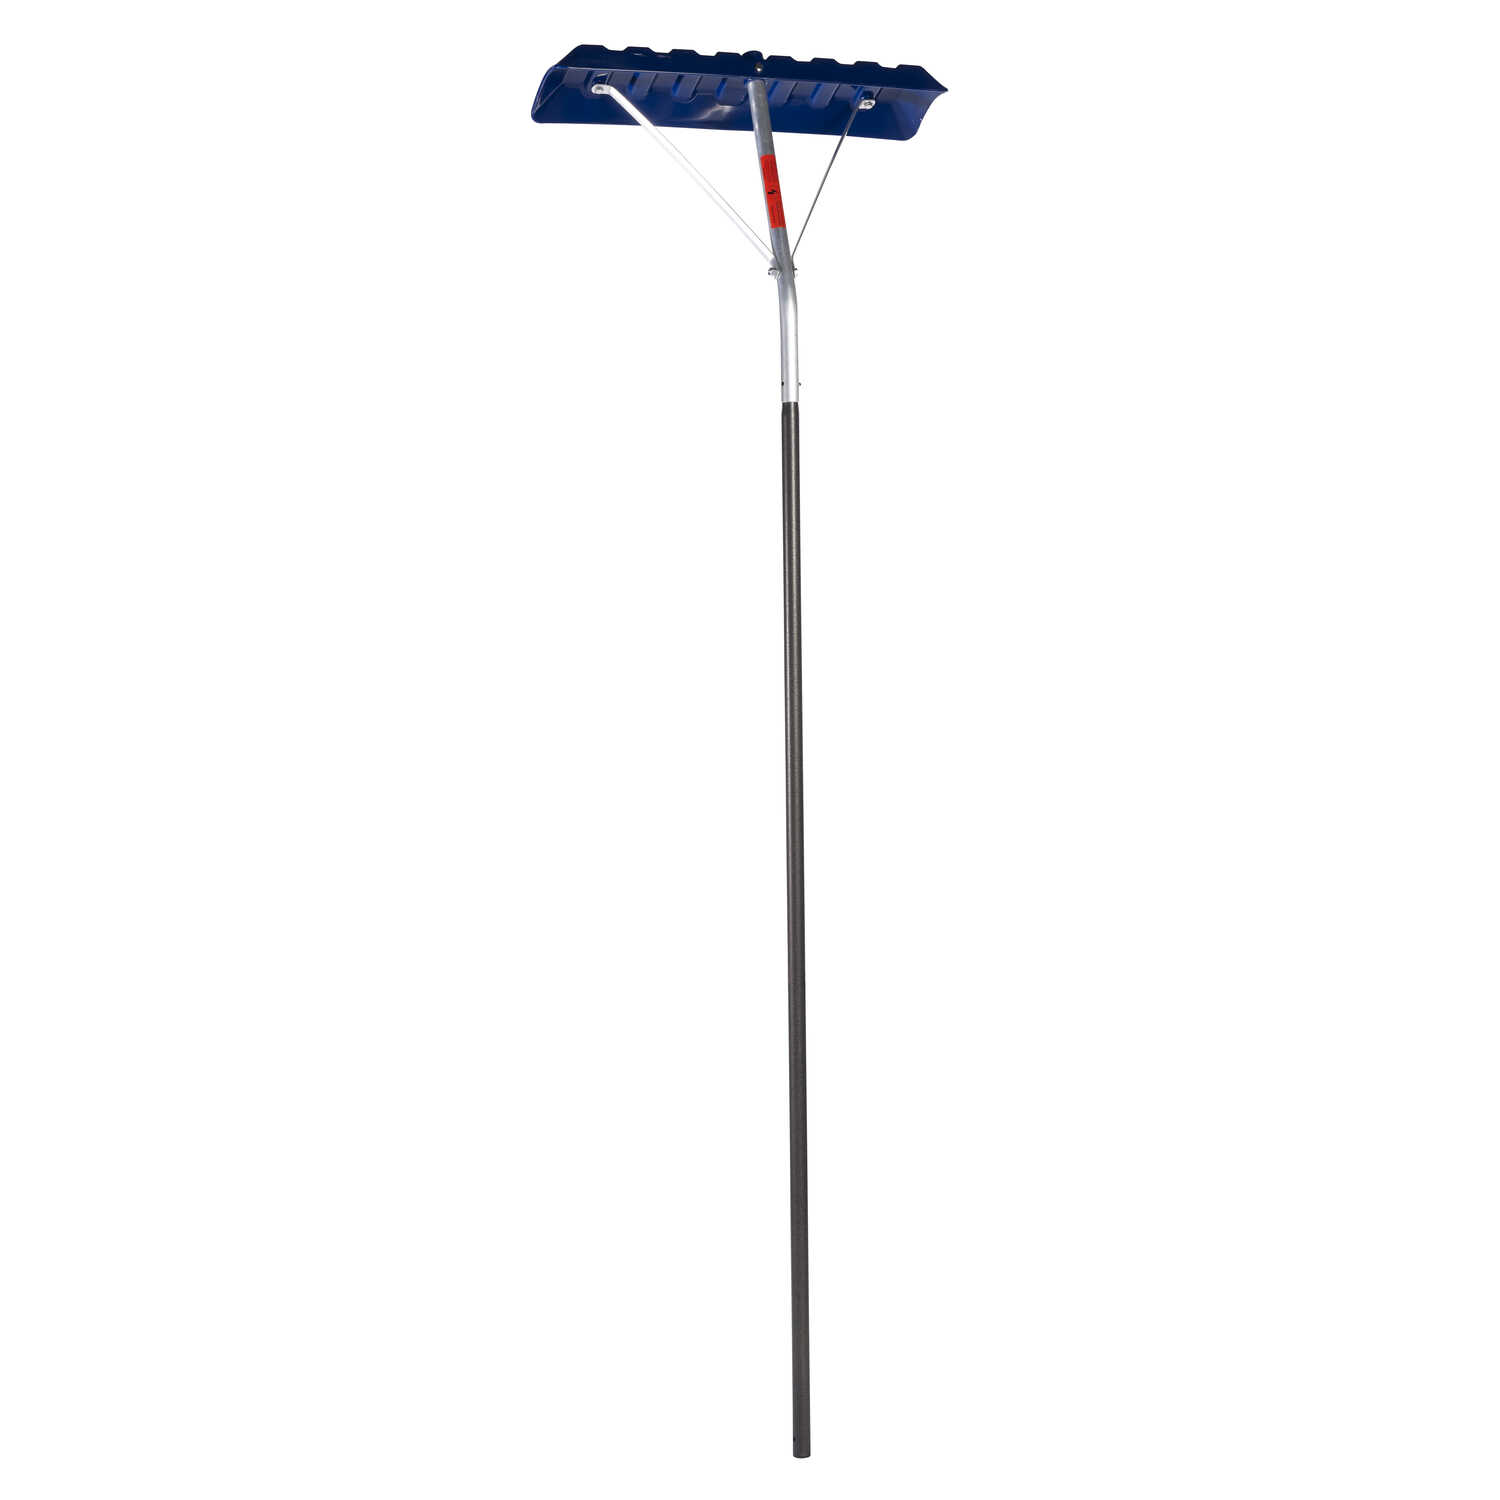 Garant 16 Ft L X 24 In W Roof Rake Ace Hardware